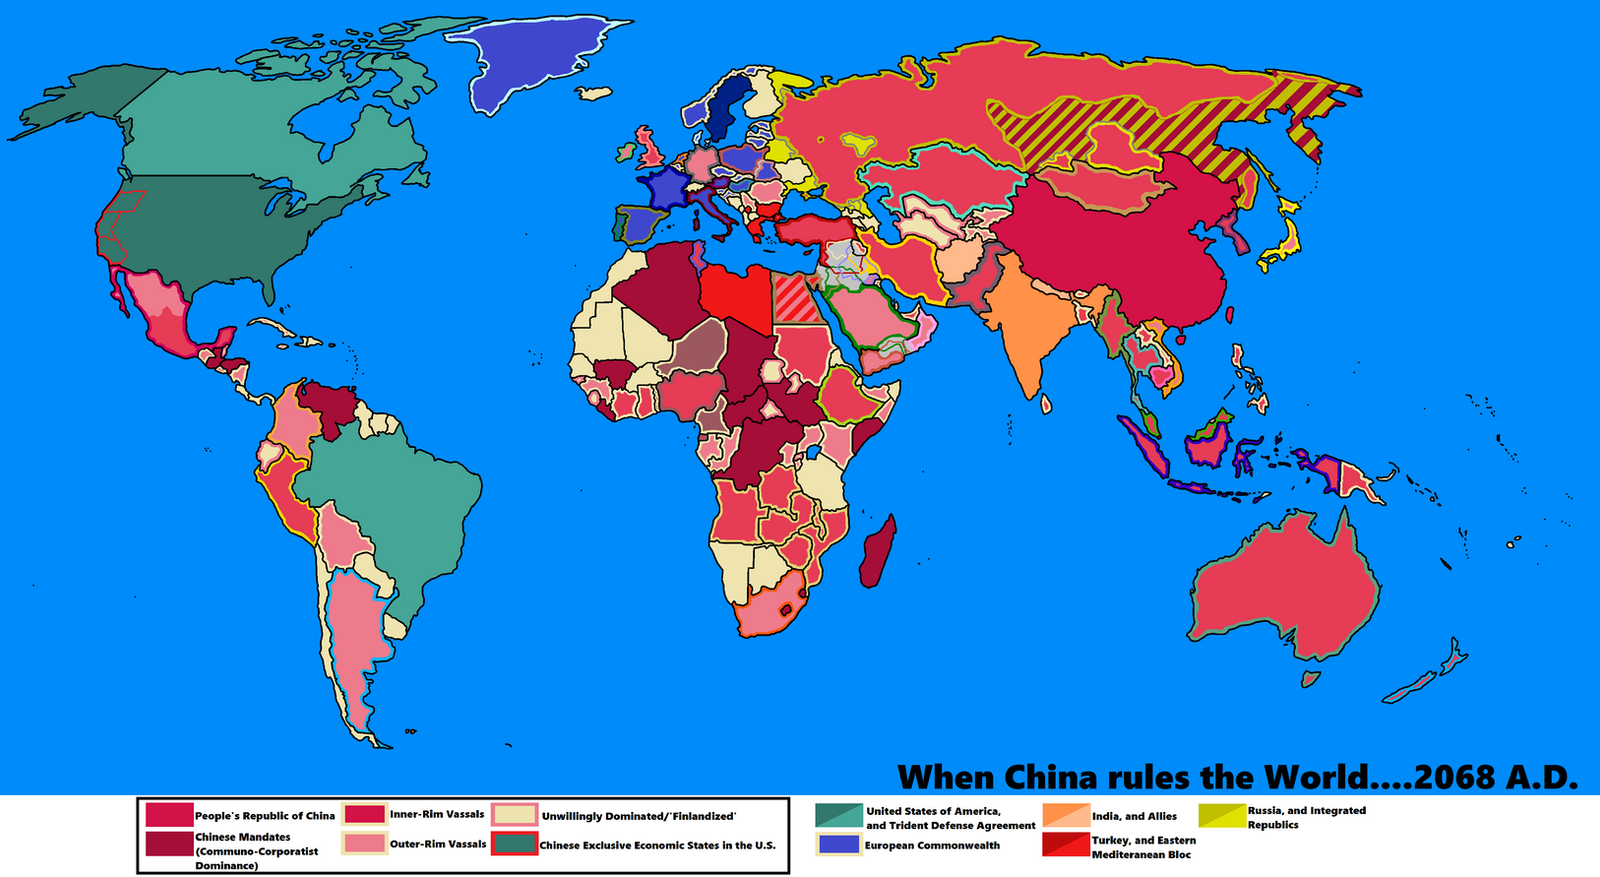 The long cold war american view by goliath maps on deviantart when china rules the world by goliath maps sciox Images